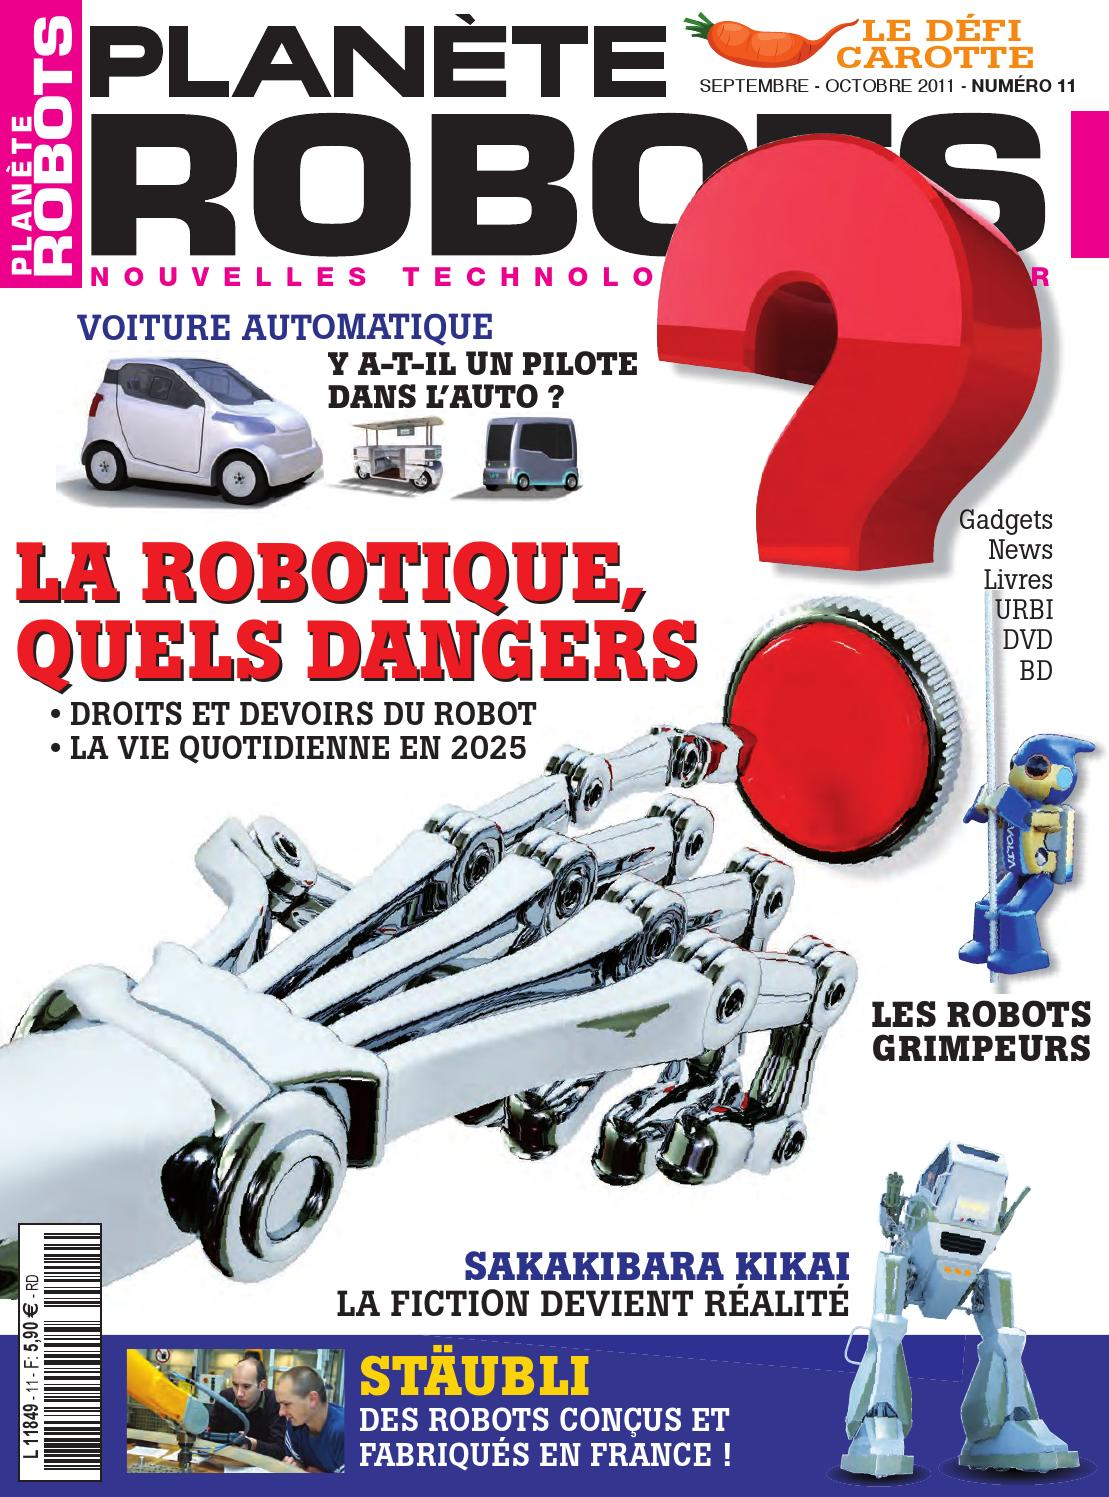 Planète Robots No.11 - La Robotique quels dangers